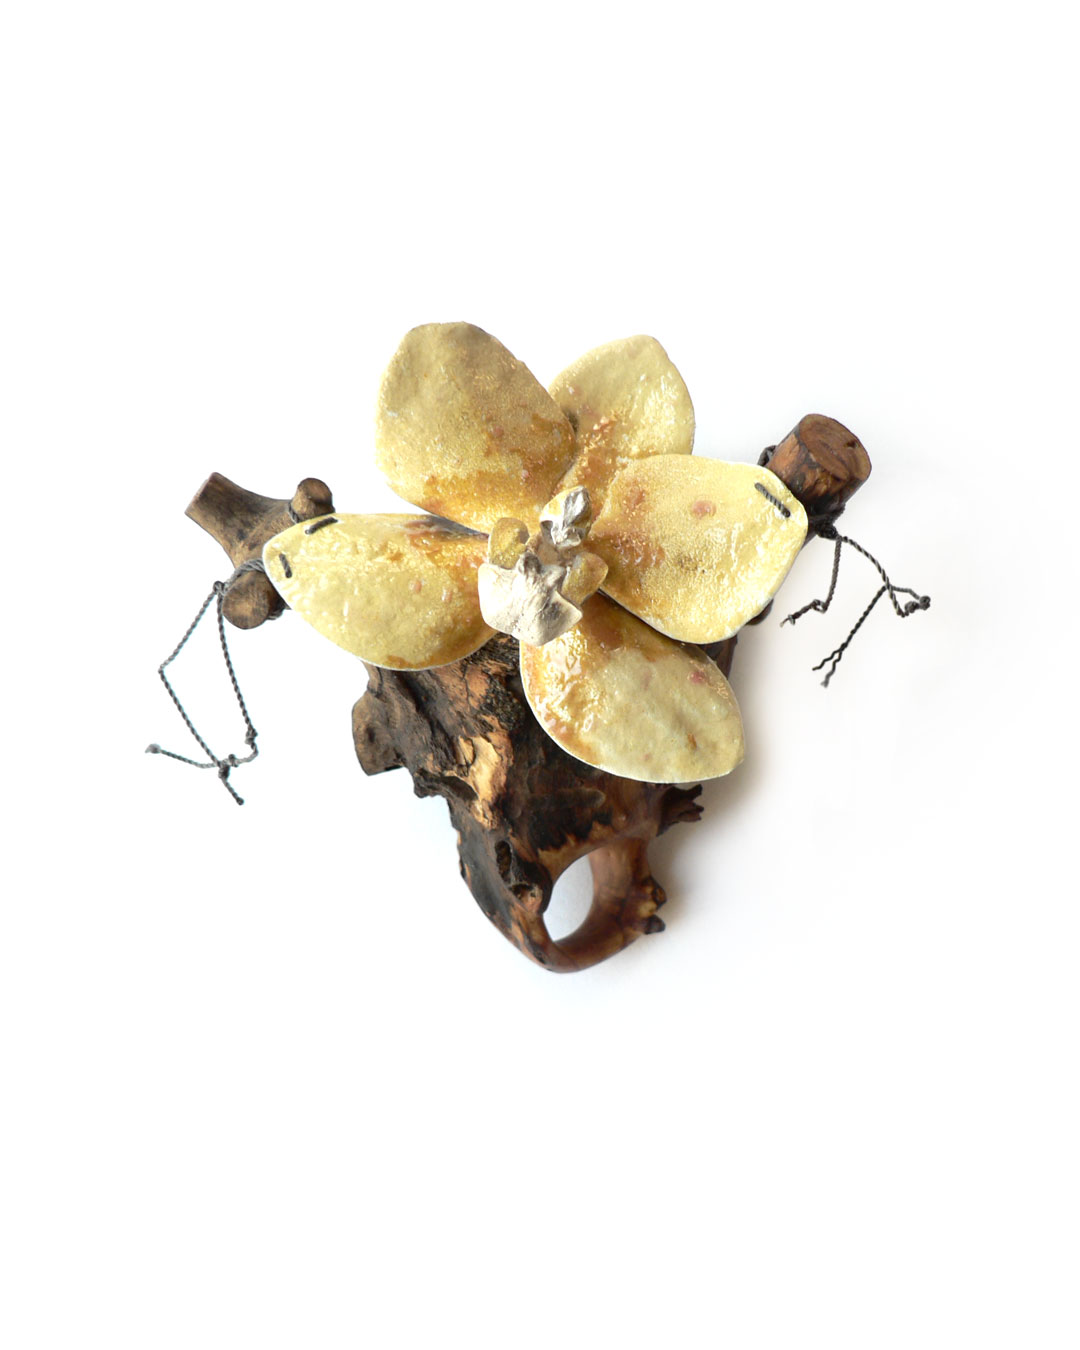 Jenny Klemming, Grandiflora, 2011, ring; apple wood, silver, enamel, silk, 94 x 83 x 83 mm, €1275